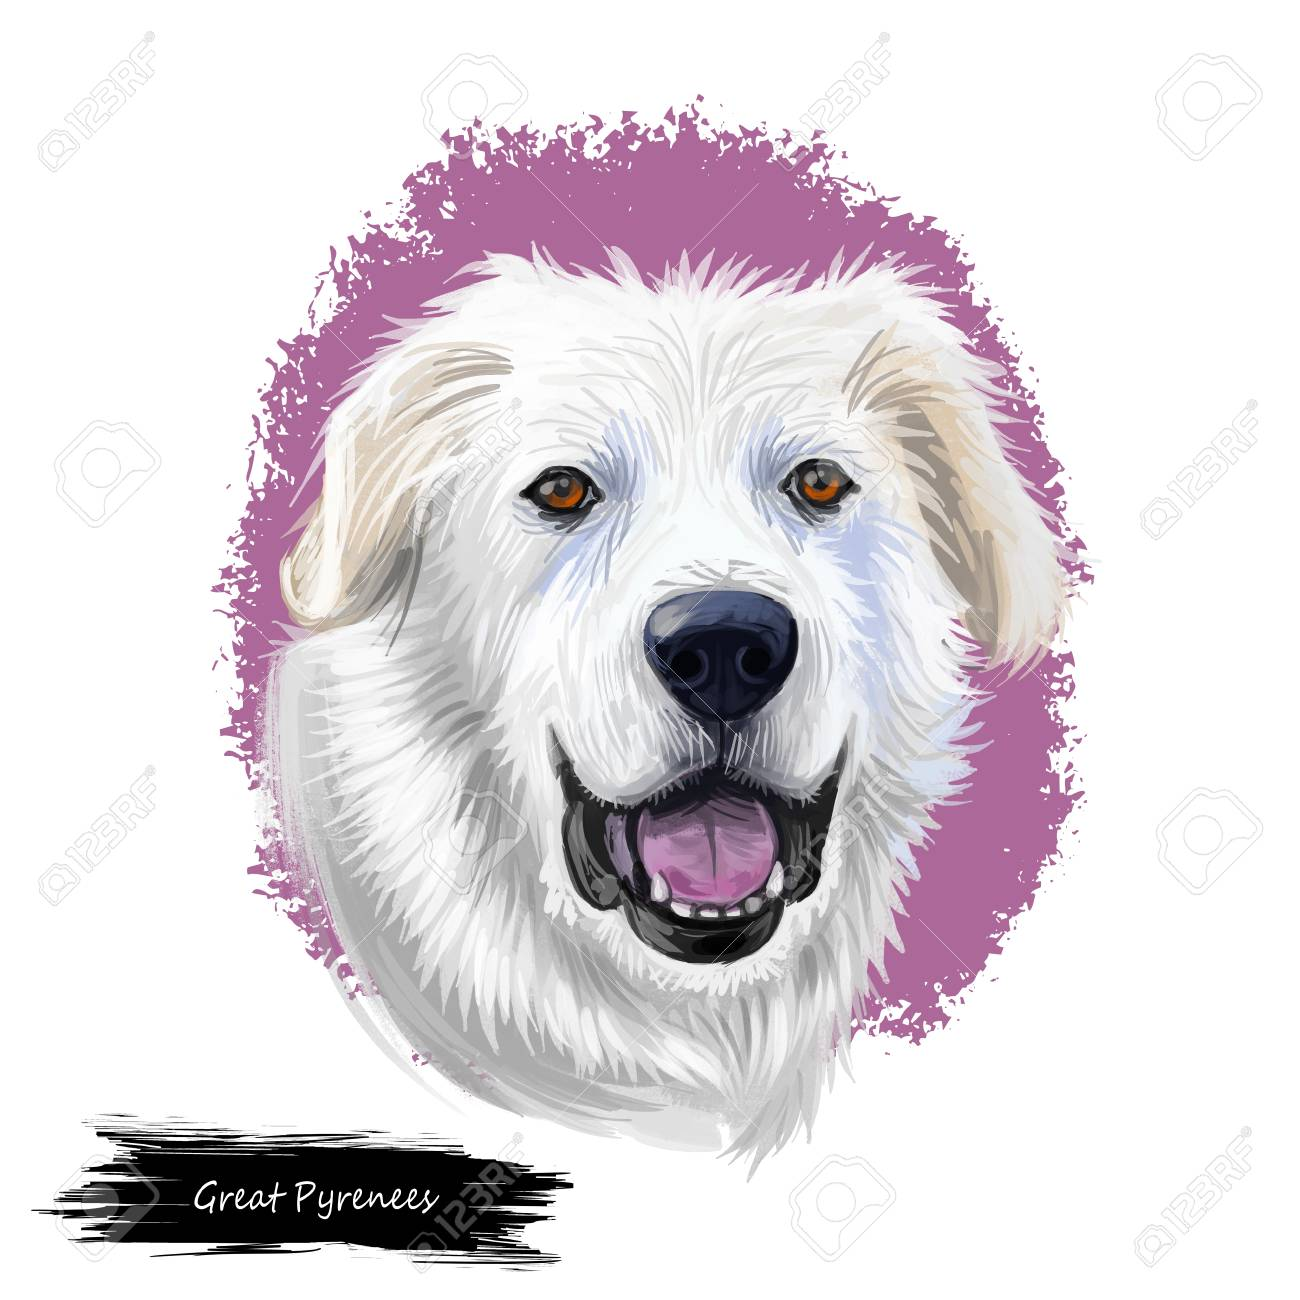 Great Pyrenees Pyrenean Mountain Pyr GP PMD Dog Digital Art 1300x1300